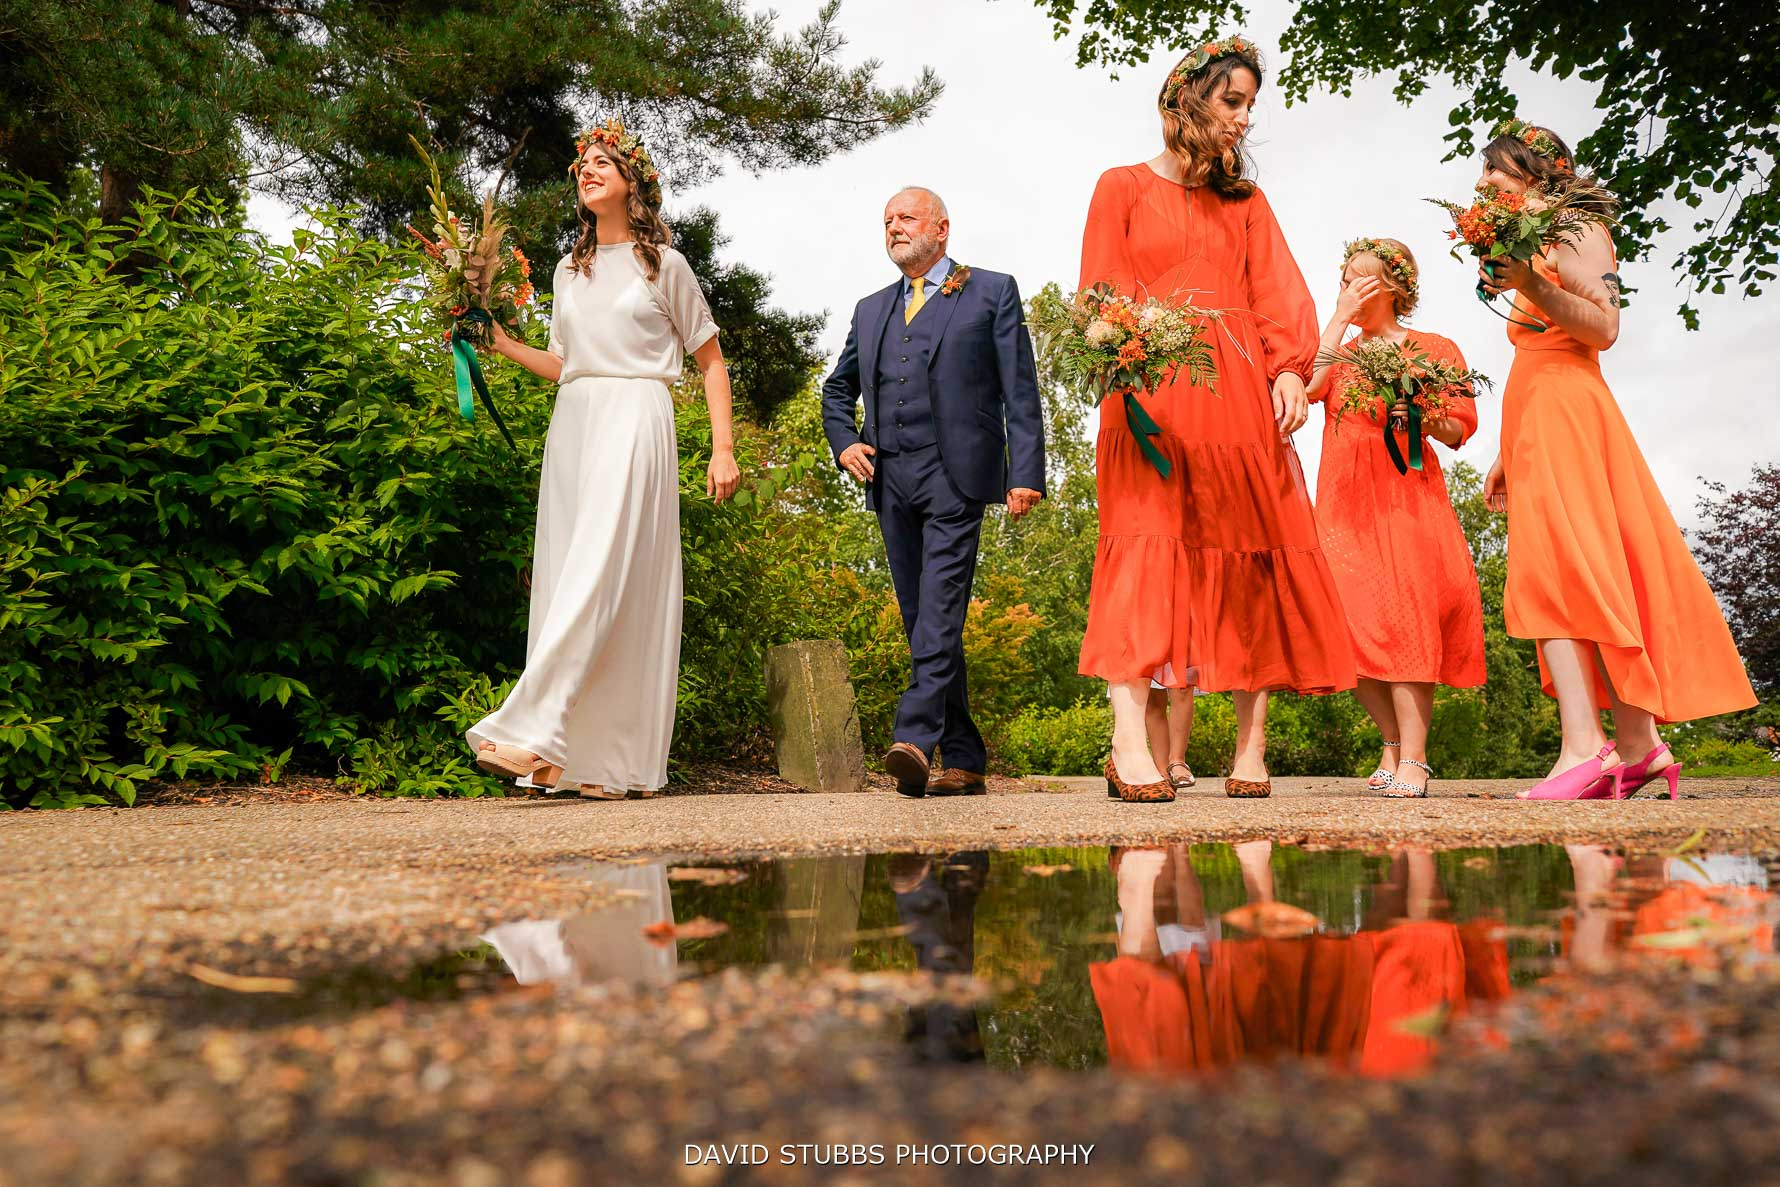 wedding reflection in puddle